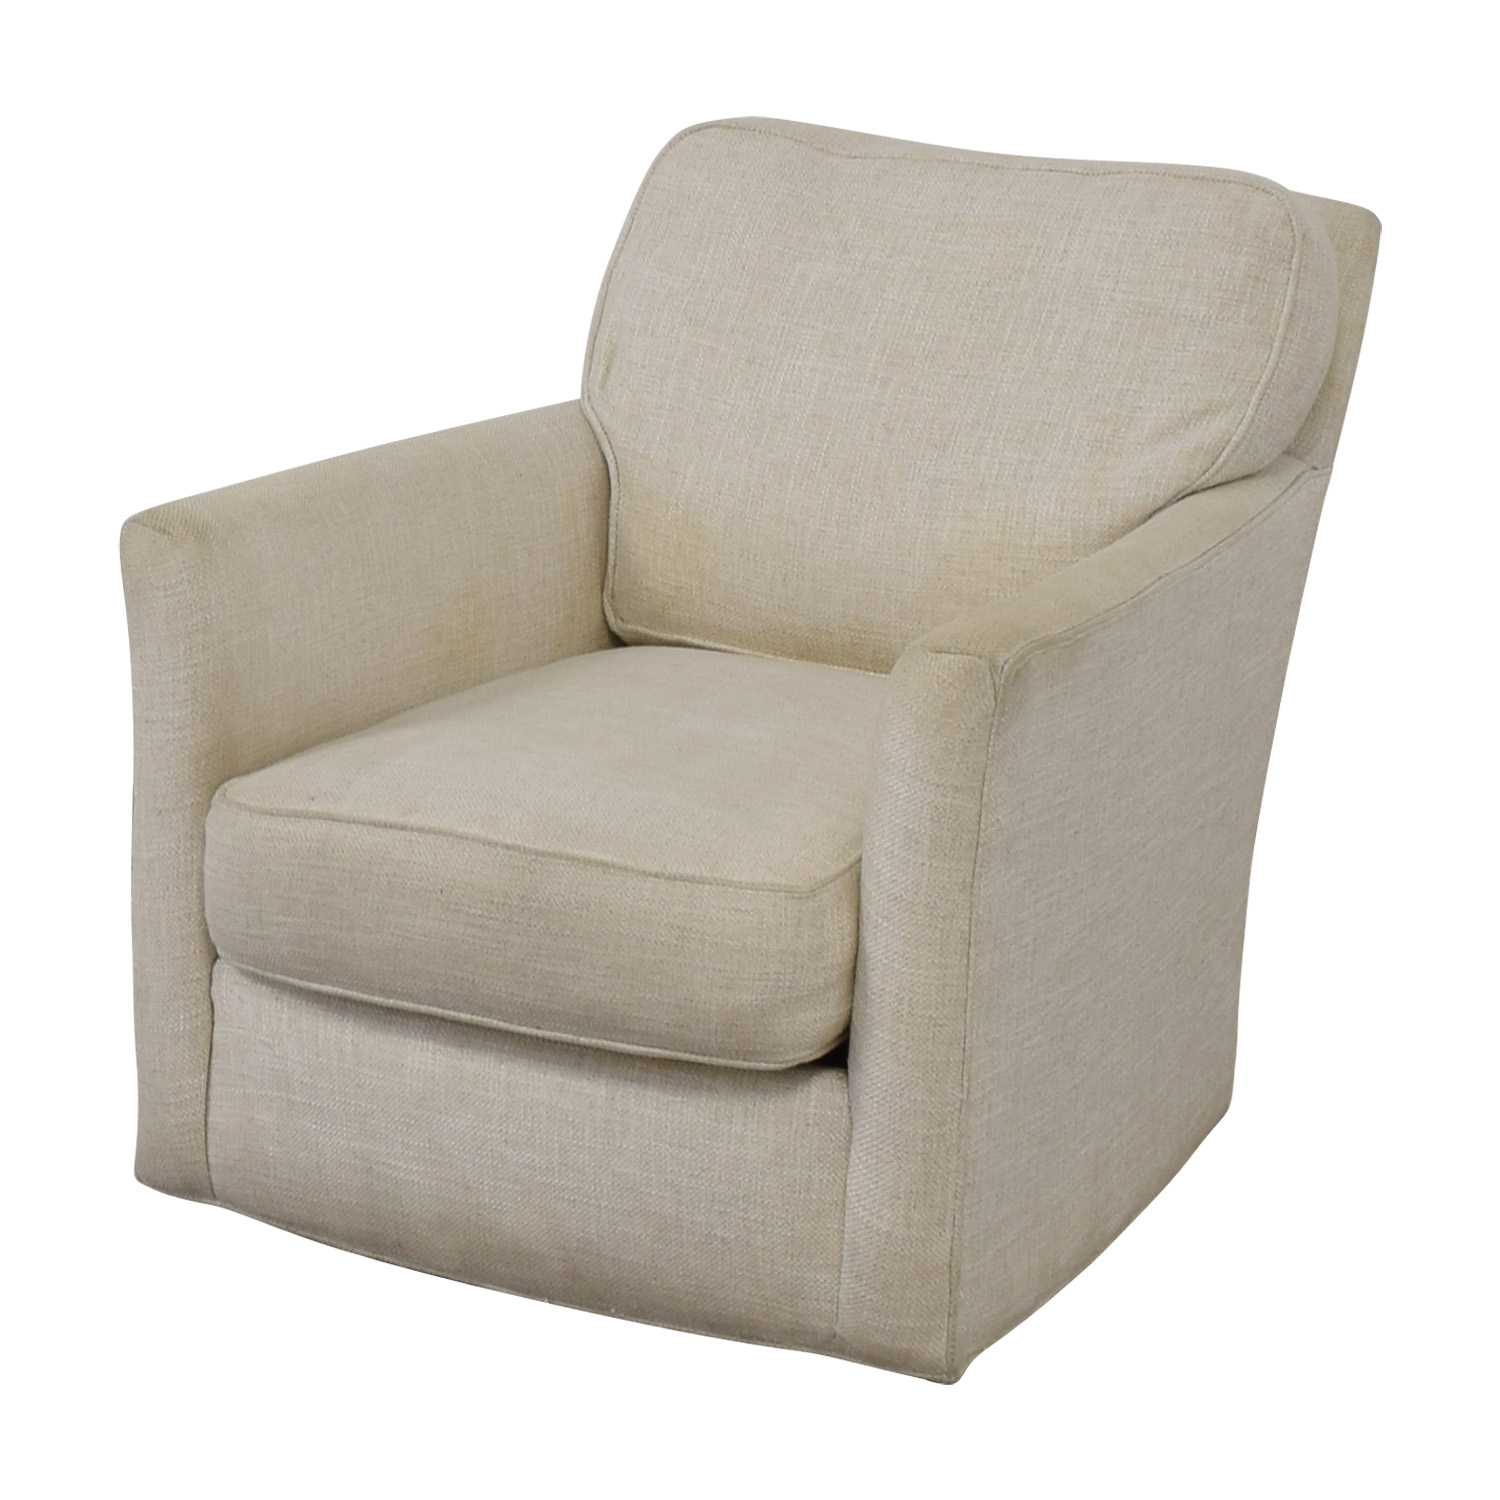 Charmant 90% OFF   Crate U0026 Barrel Crate U0026 Barrel Talia White Swivel Chair / Chairs